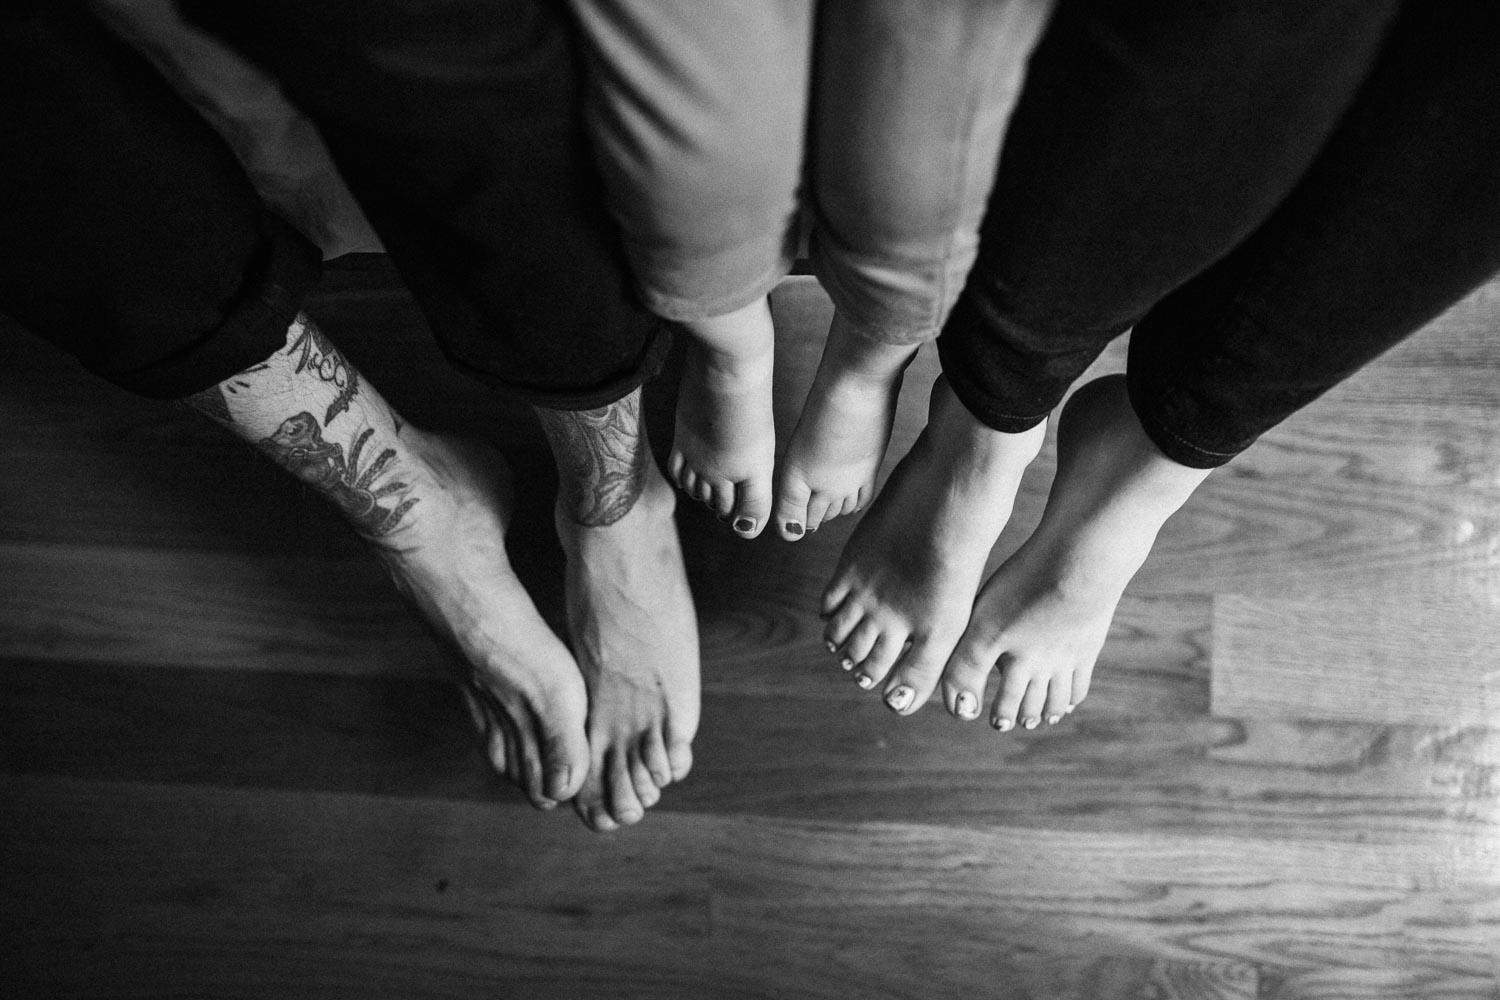 natural-and-artistic-black-and-white-photo-of-family-feet-sugarhouse-ut